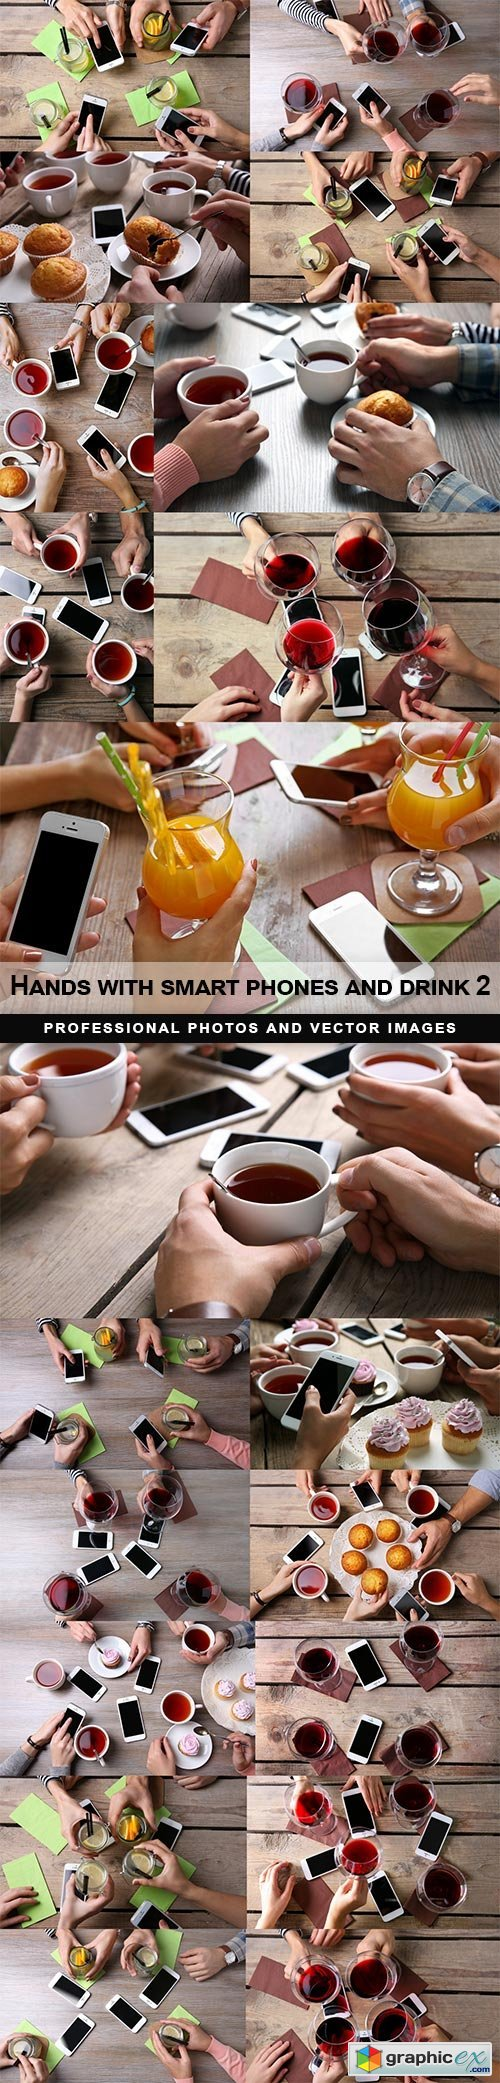 Hands with smart phones and drink 2